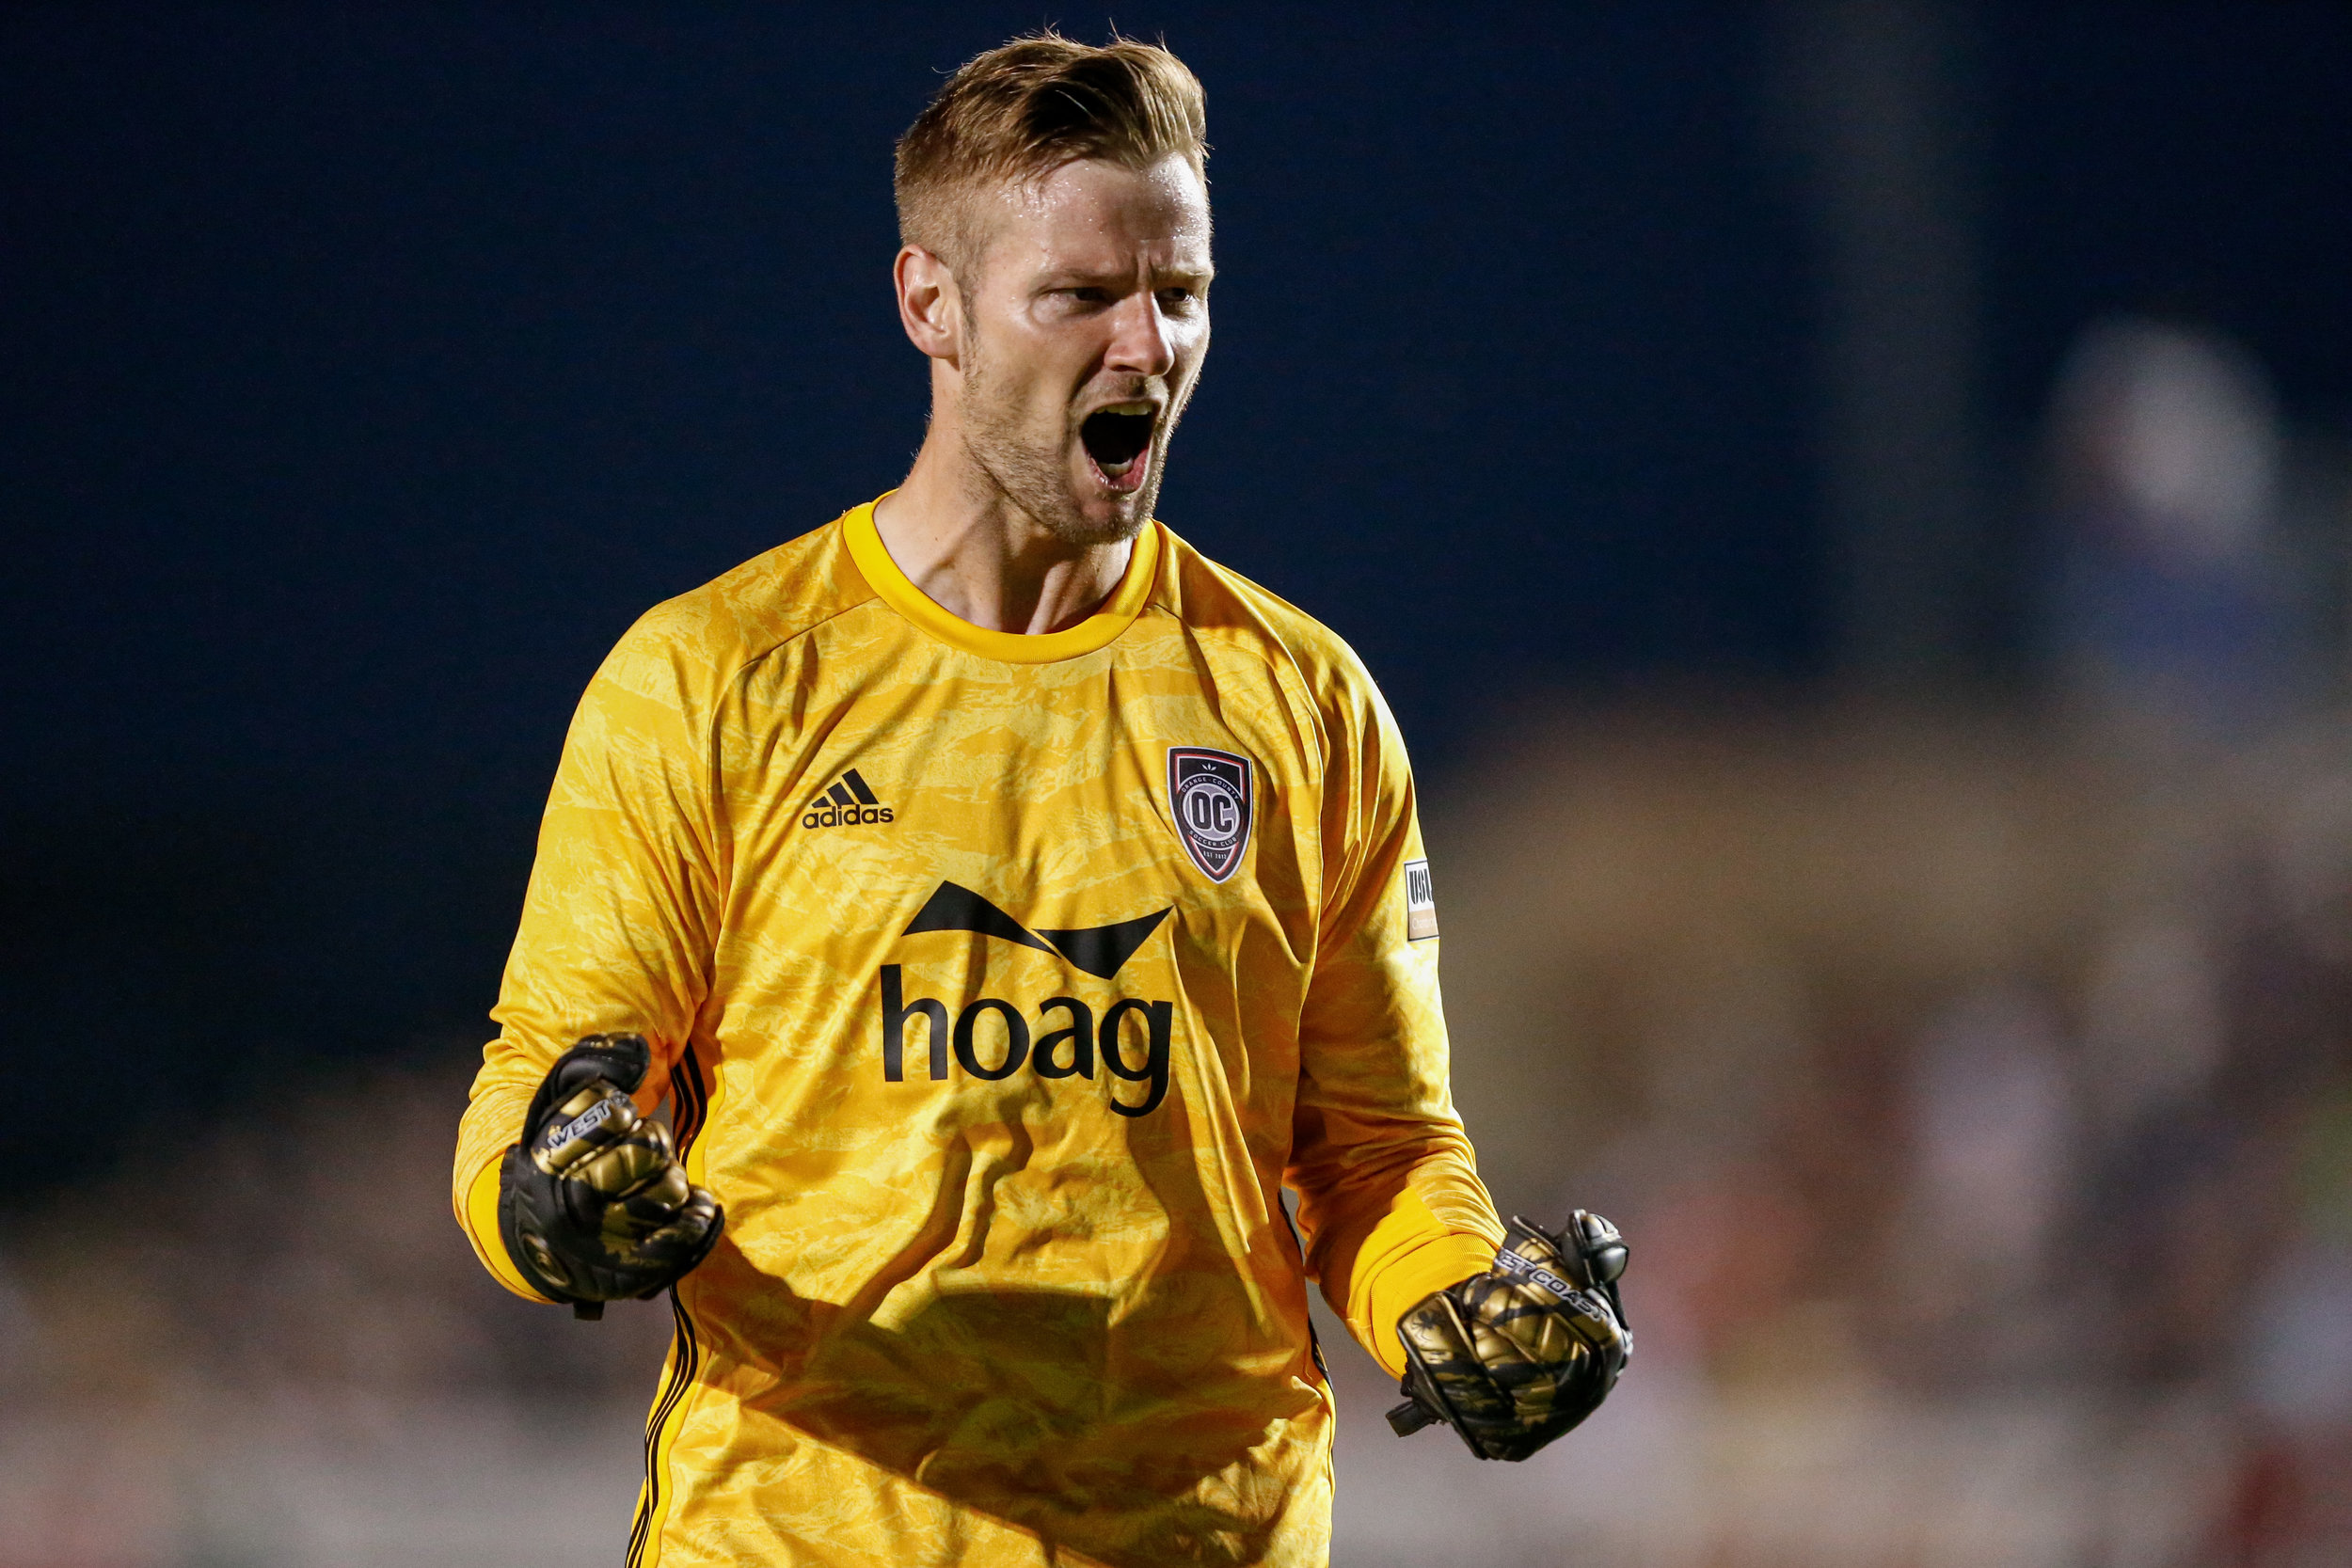 Orange County SC goalkeeper Patrick McLain celebrates after the team's 2-1 road victory over Colorado Springs Switchbacks FC. |  Photo courtesy of Isaiah J. Downing.